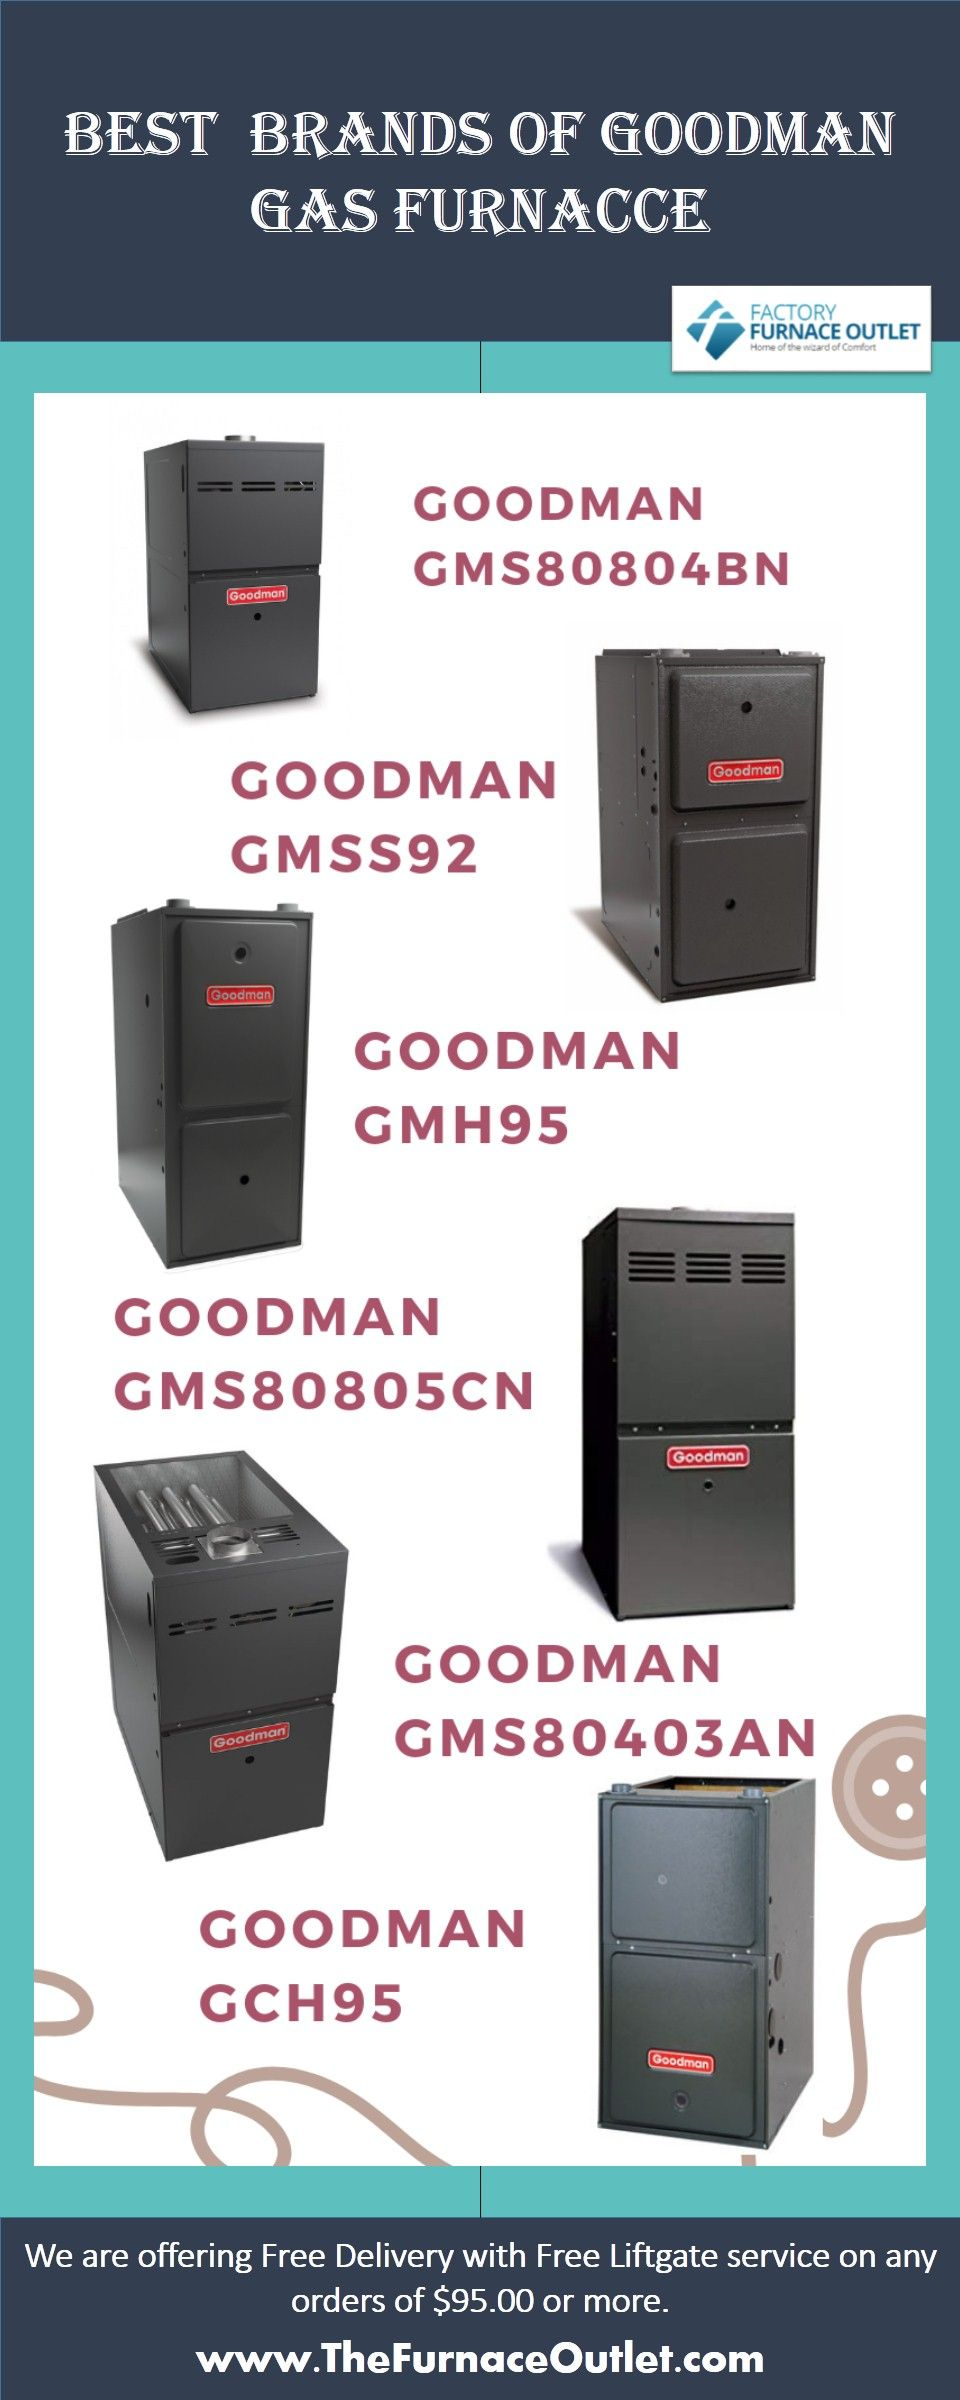 Top Brands of Goodman Gas Furnaces Choose to Buy Top and